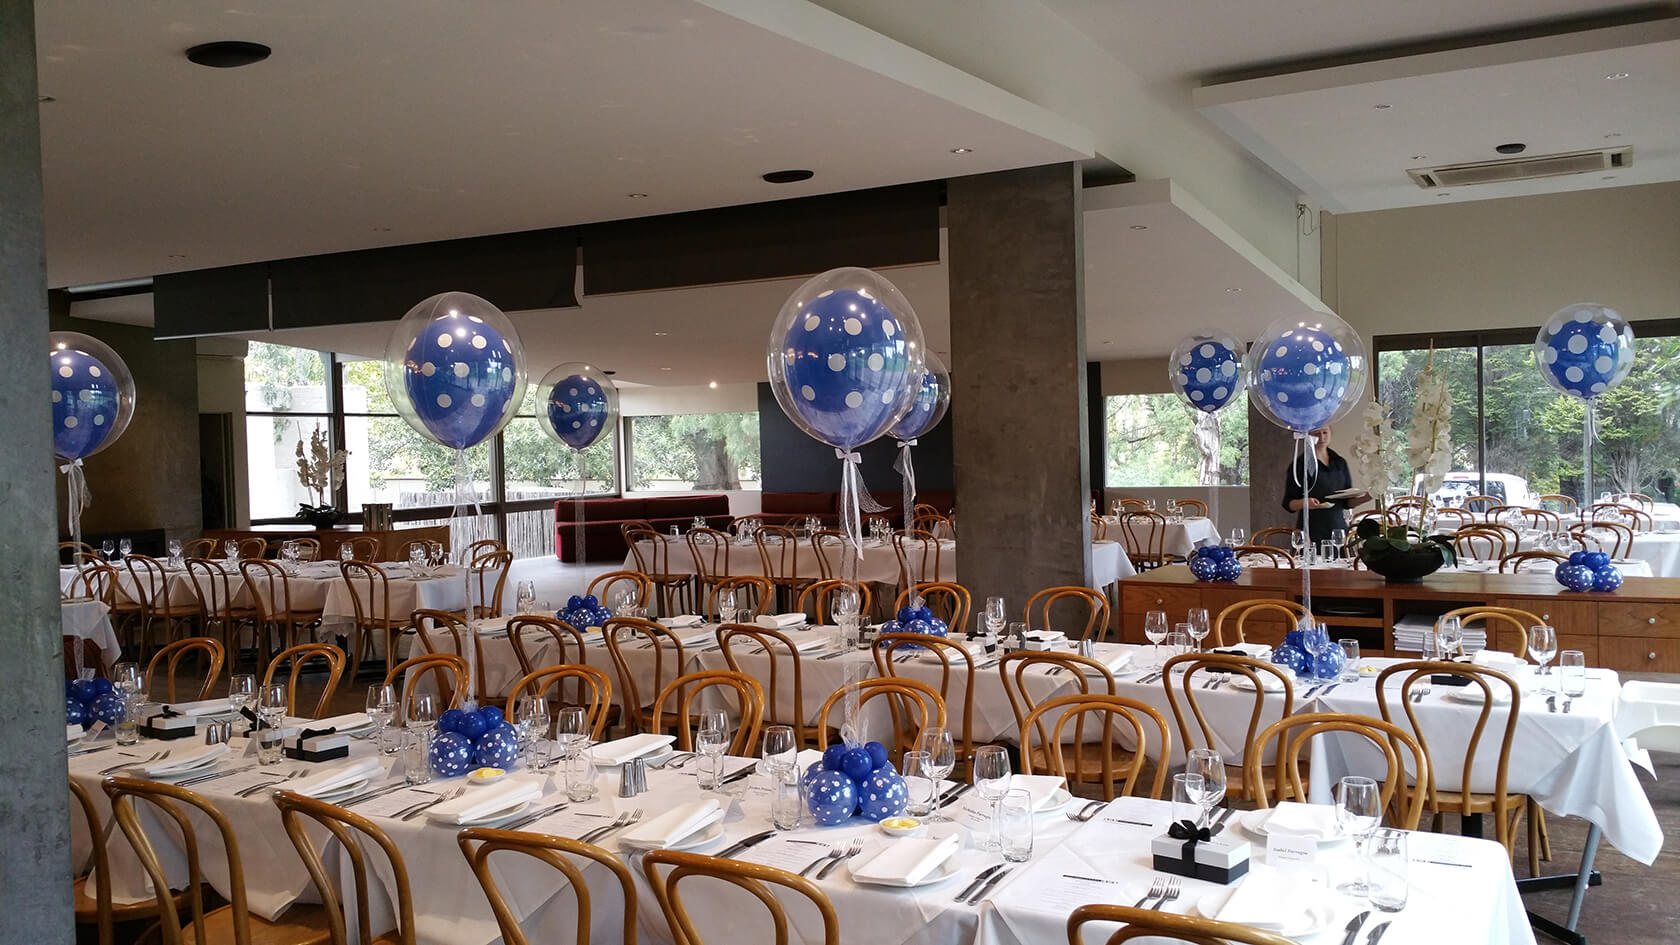 See Our Events! - image CE-38 on https://shivooballoons.com.au